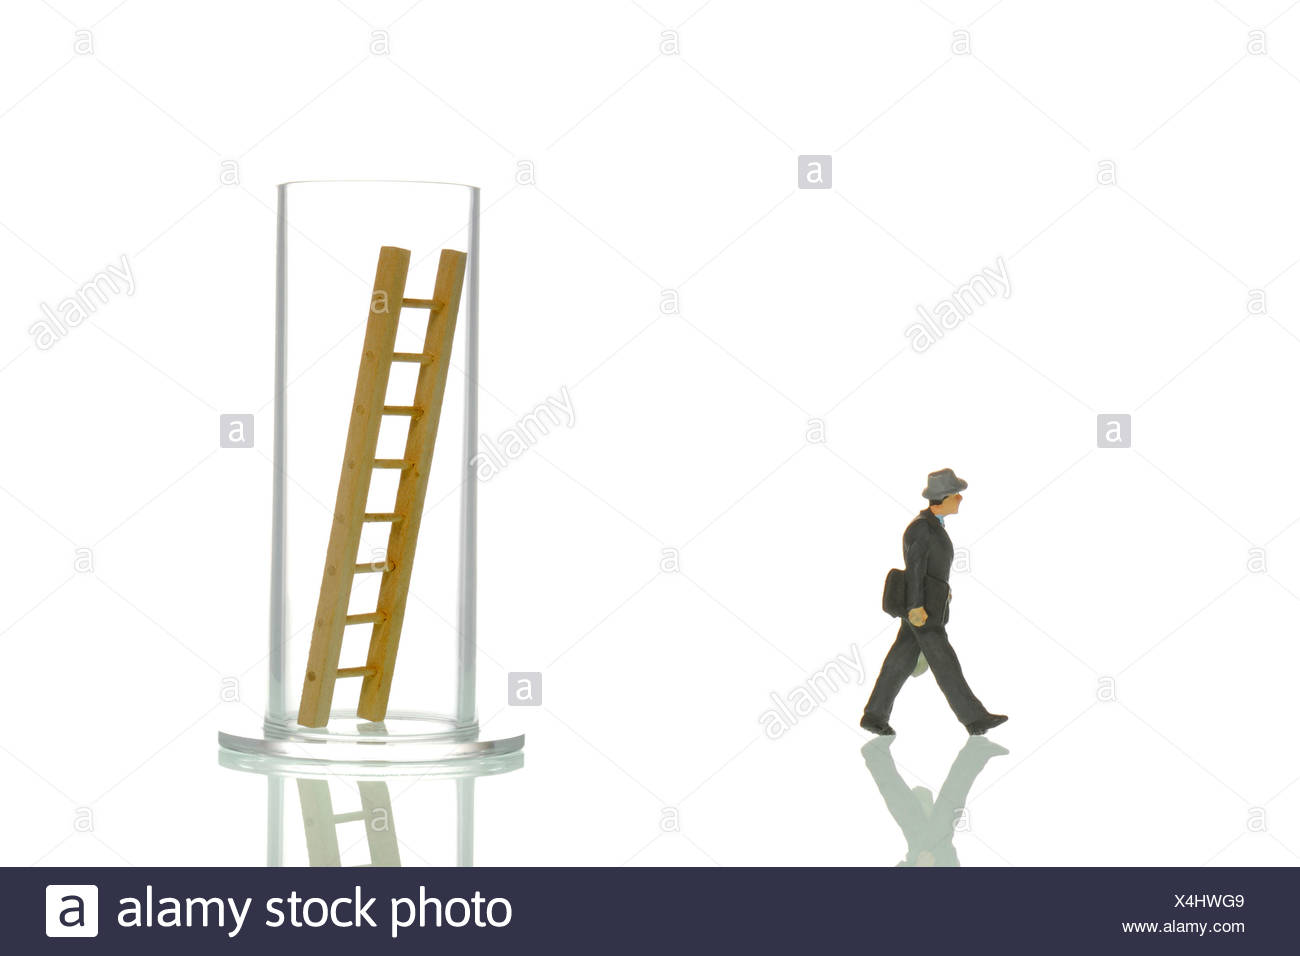 Manager figurines and glass with ladder, symbolic image for 'Breaking out of everday life' - Stock Image